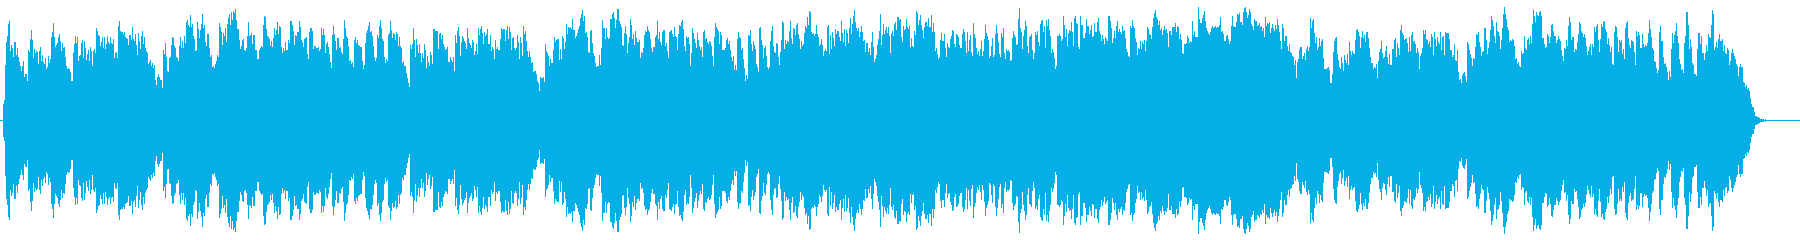 Figaro's Marriage (Mozart)'s reproduced waveform